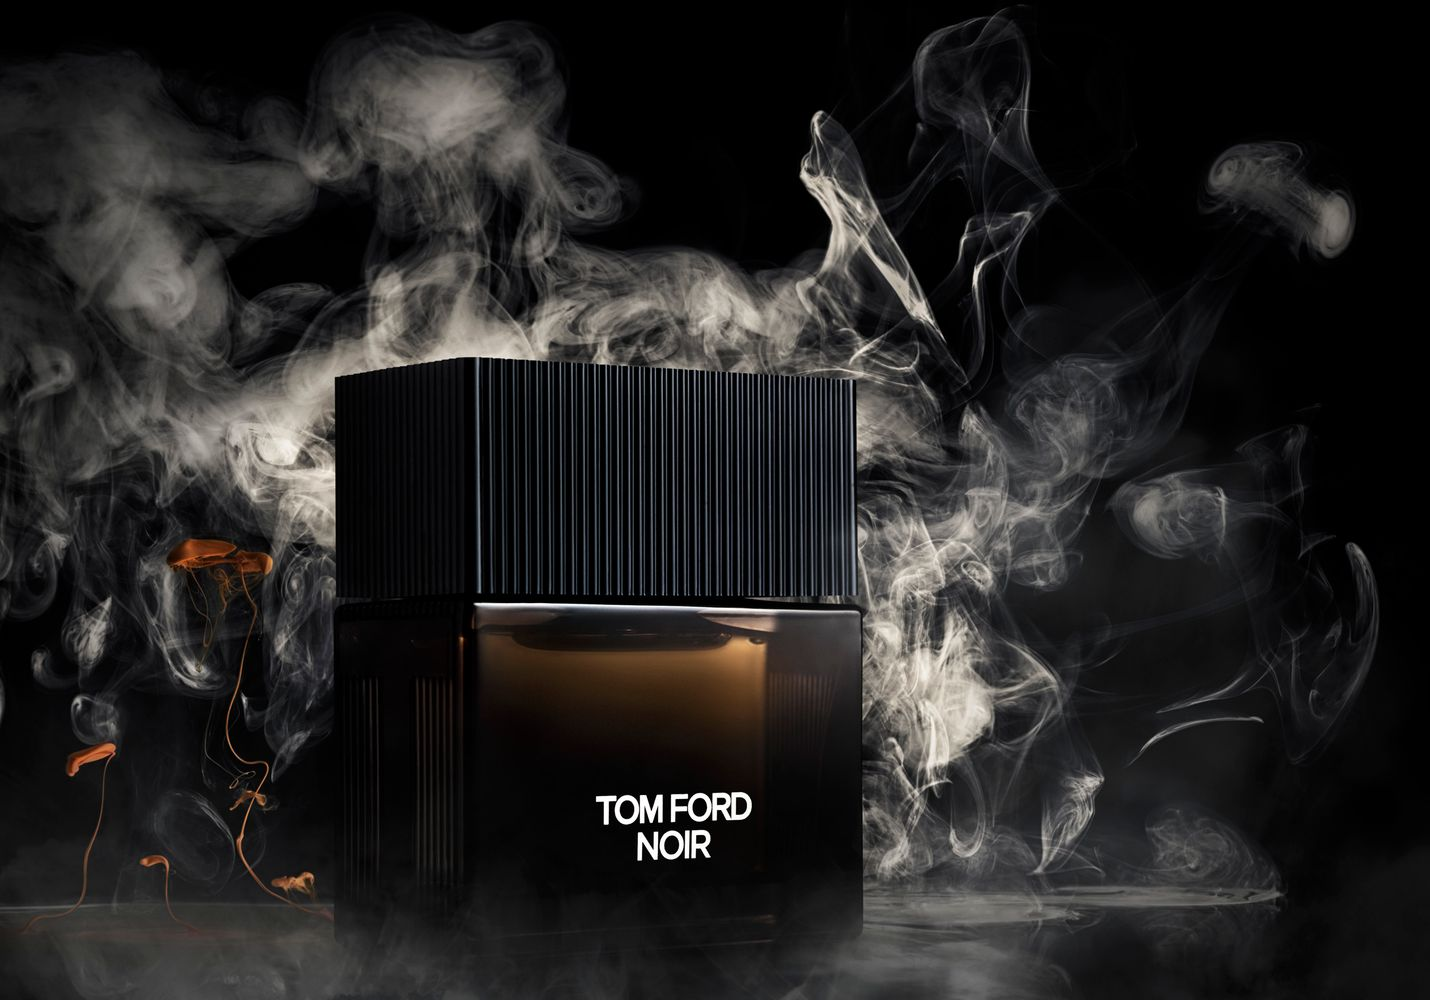 Underwater effects for Tom Ford ad campaign